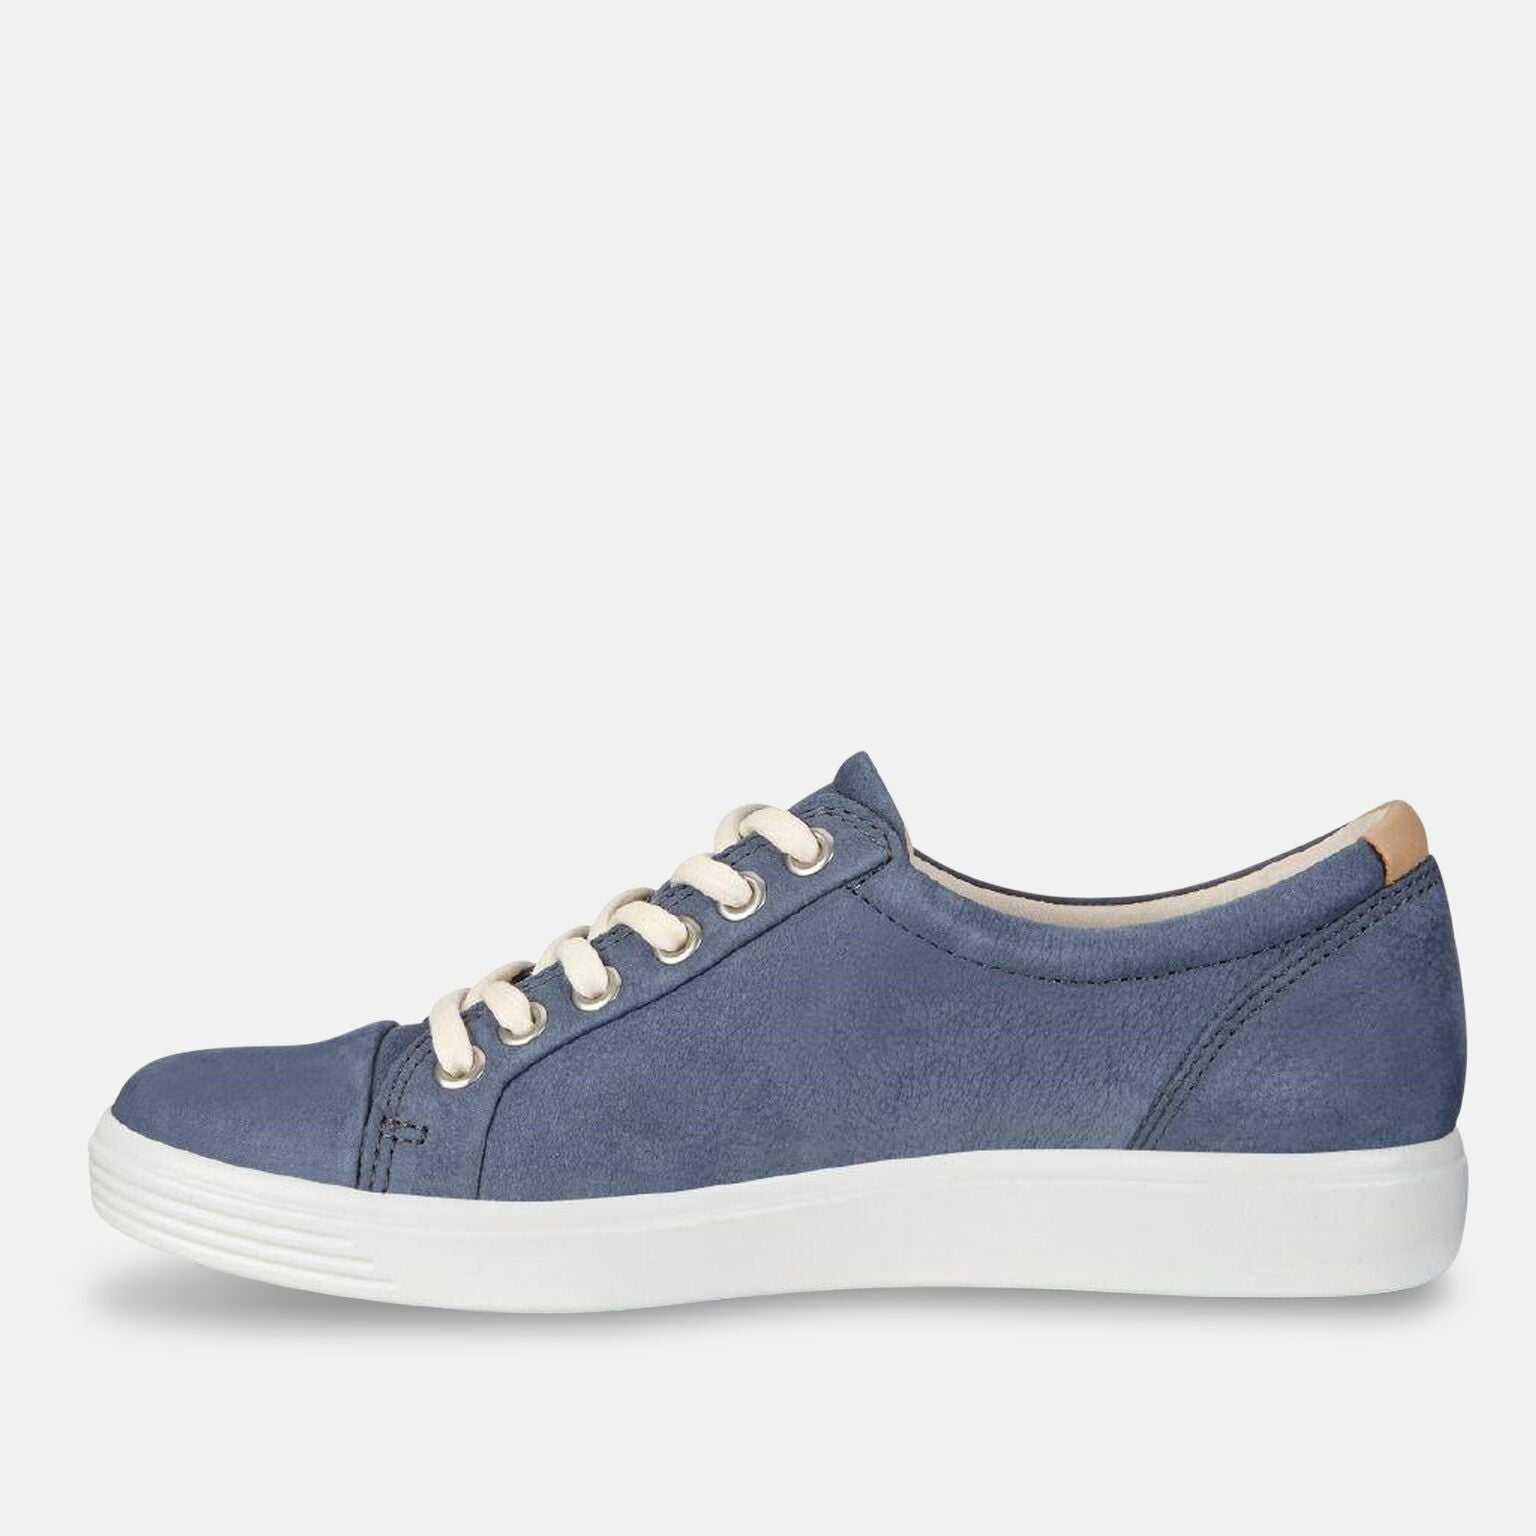 aeb14af81 Ecco Footwear UK 3.5   EU 36   US 5-5.5   Blue Soft 7. Ecco Footwear UK 3.5    EU 36   US 5-5.5   Blue Soft 7